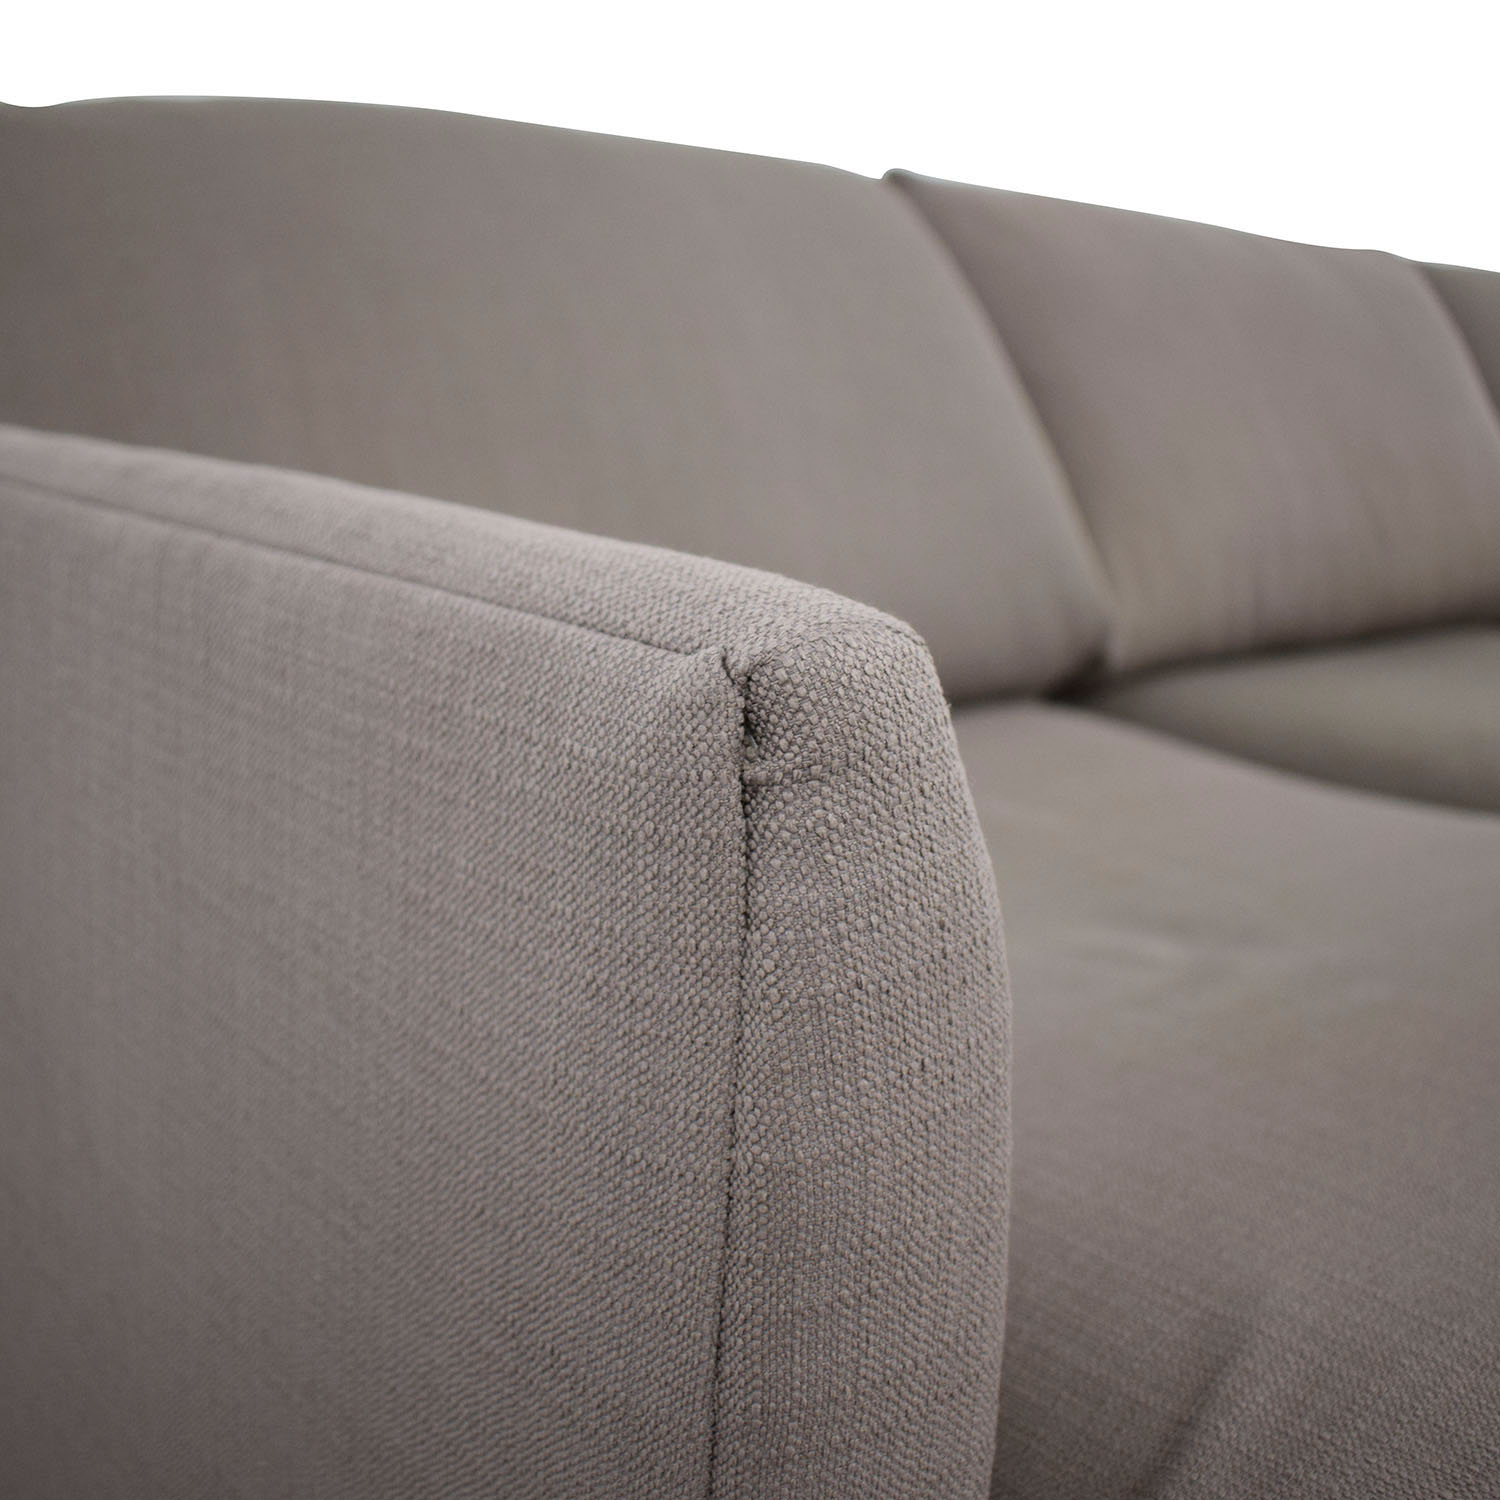 Crate & Barrel Crate & Barrel Two Piece Sectional discount